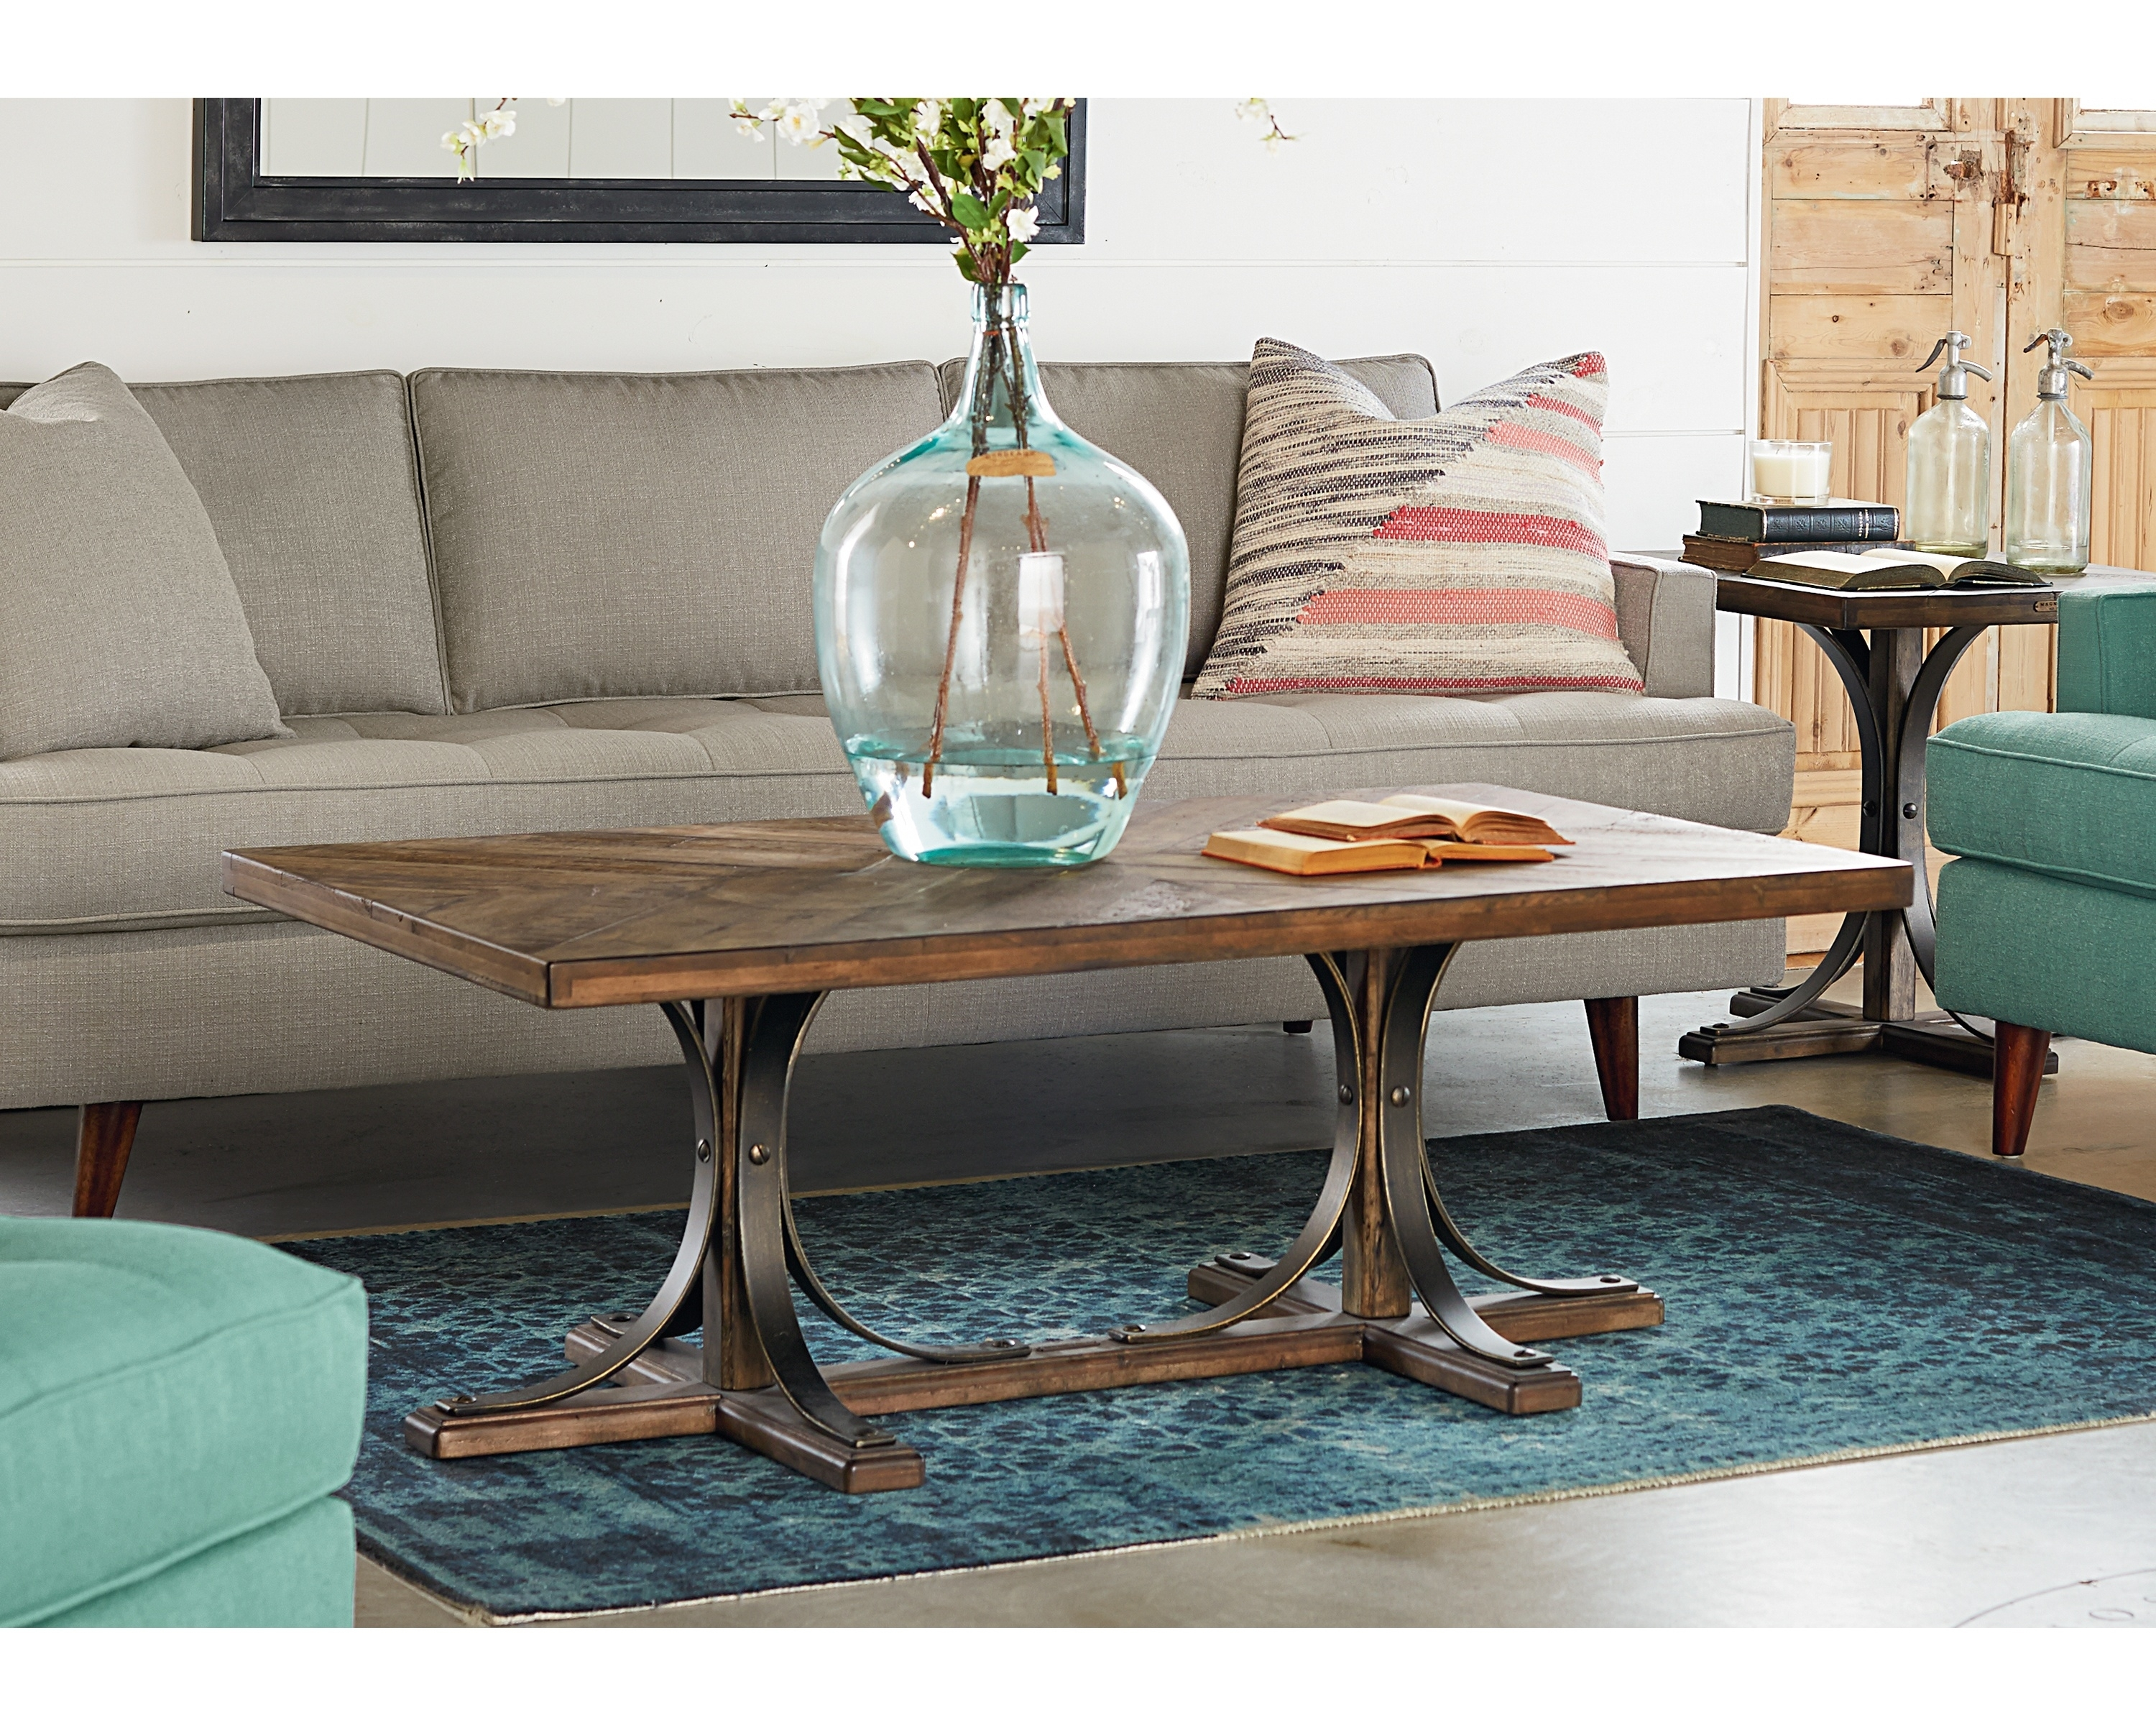 Iron Trestle Coffee Table – Magnolia Home Intended For Most Popular Magnolia Home Shop Floor Dining Tables With Iron Trestle (Photo 14 of 20)